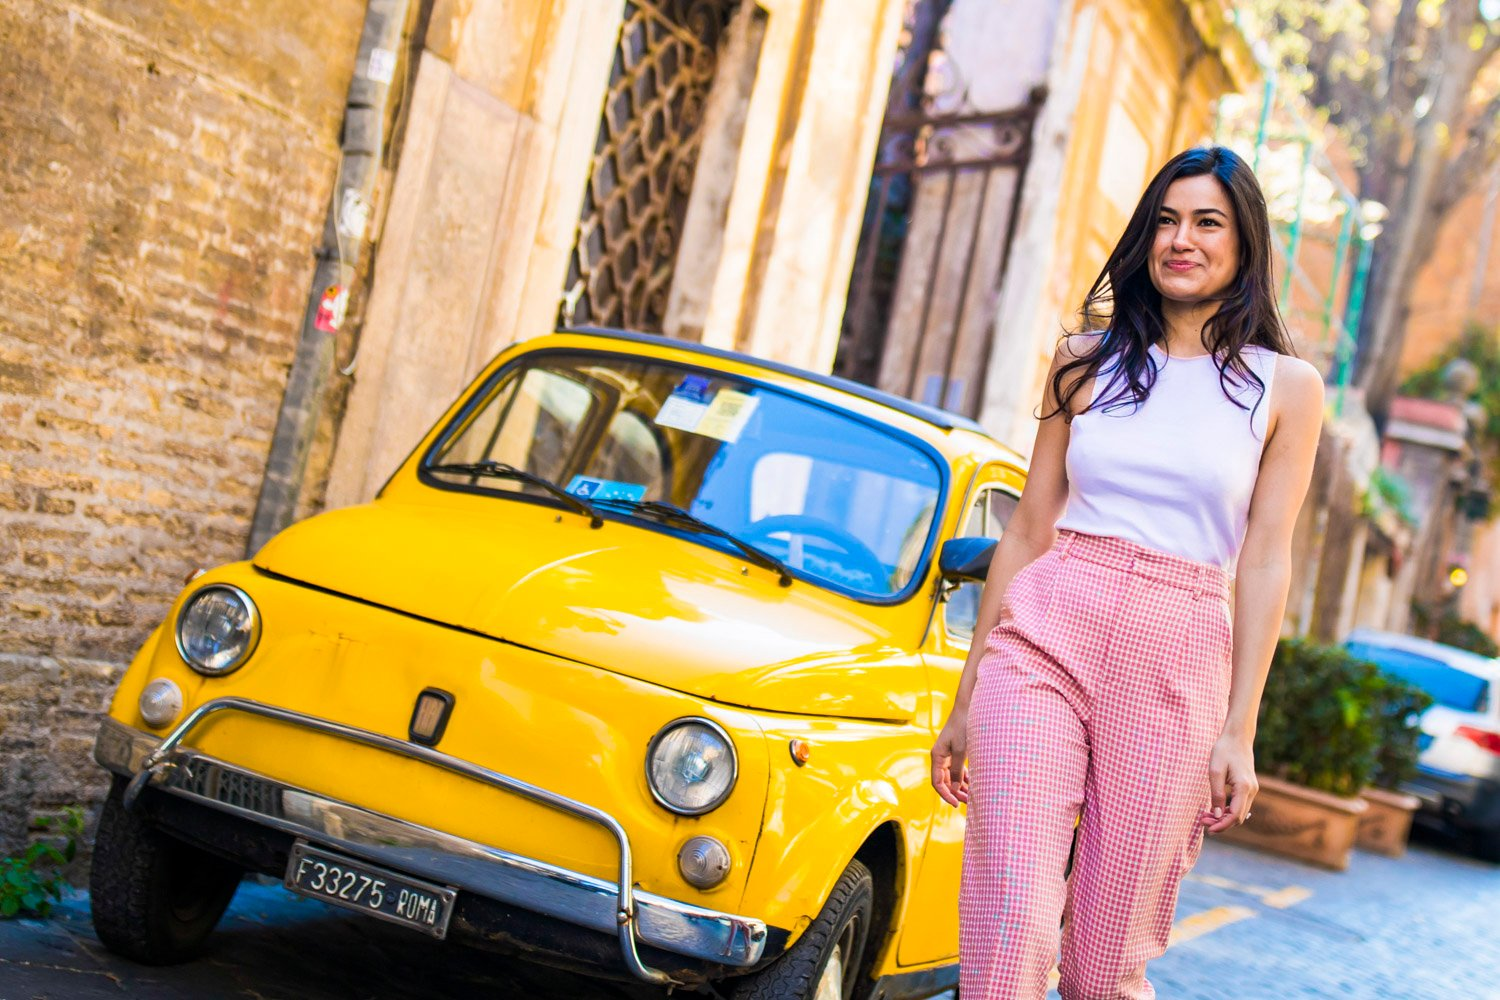 luxury photo session in rome with a vintage 500 car